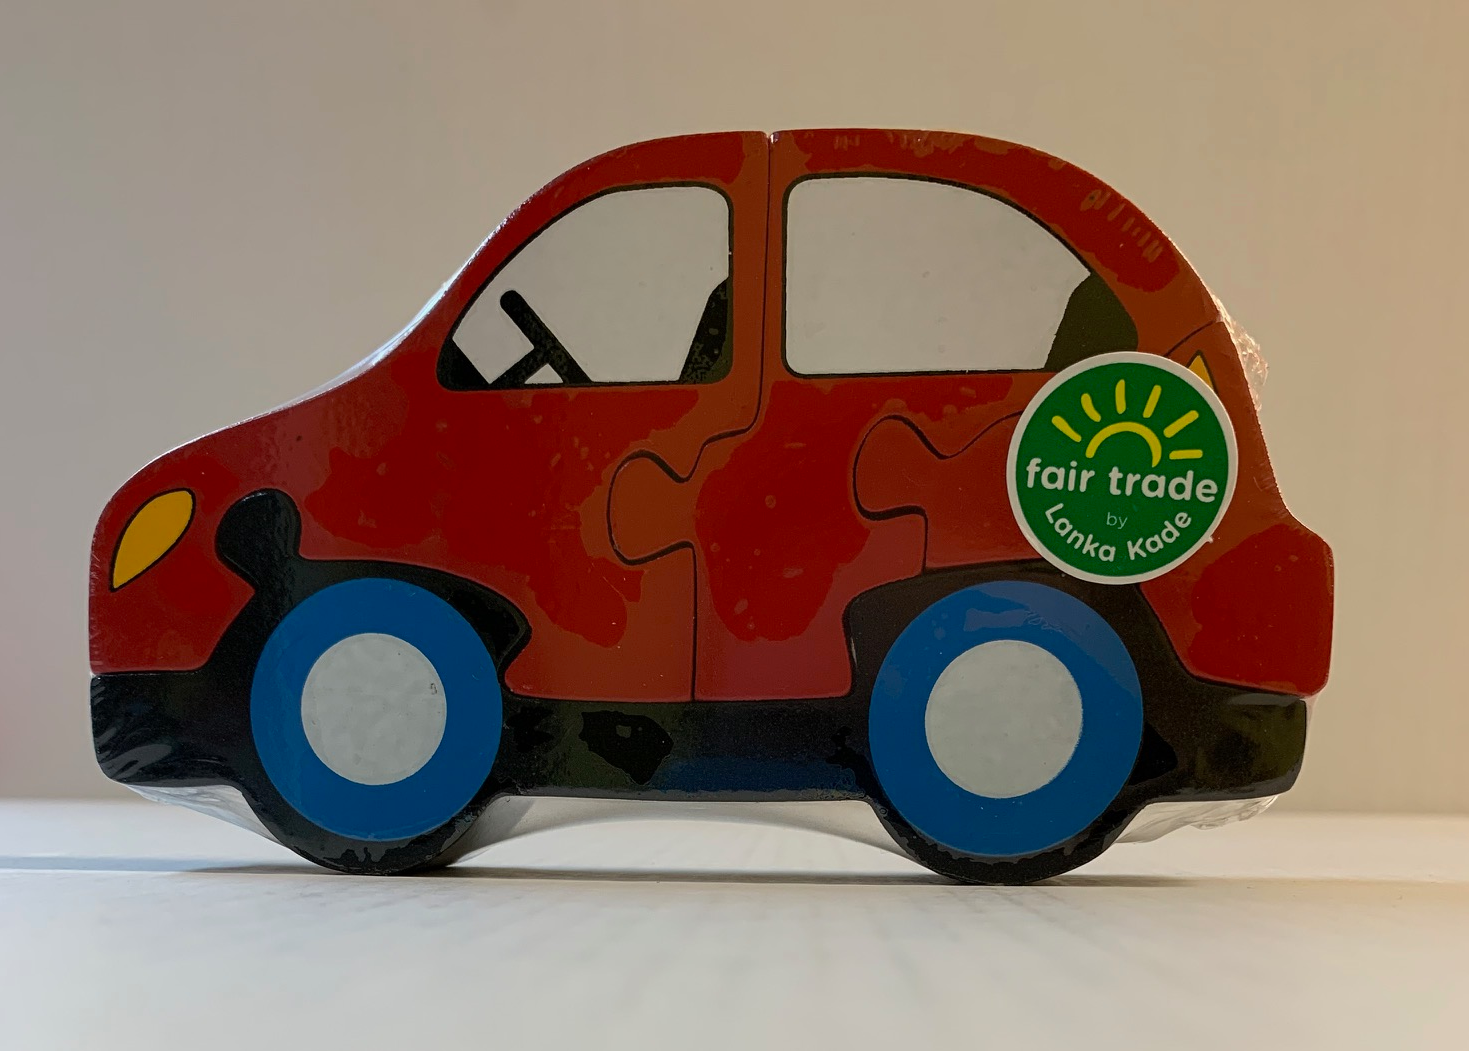 SJ22 LANKA KADE MINI JIGSAW RED CAR